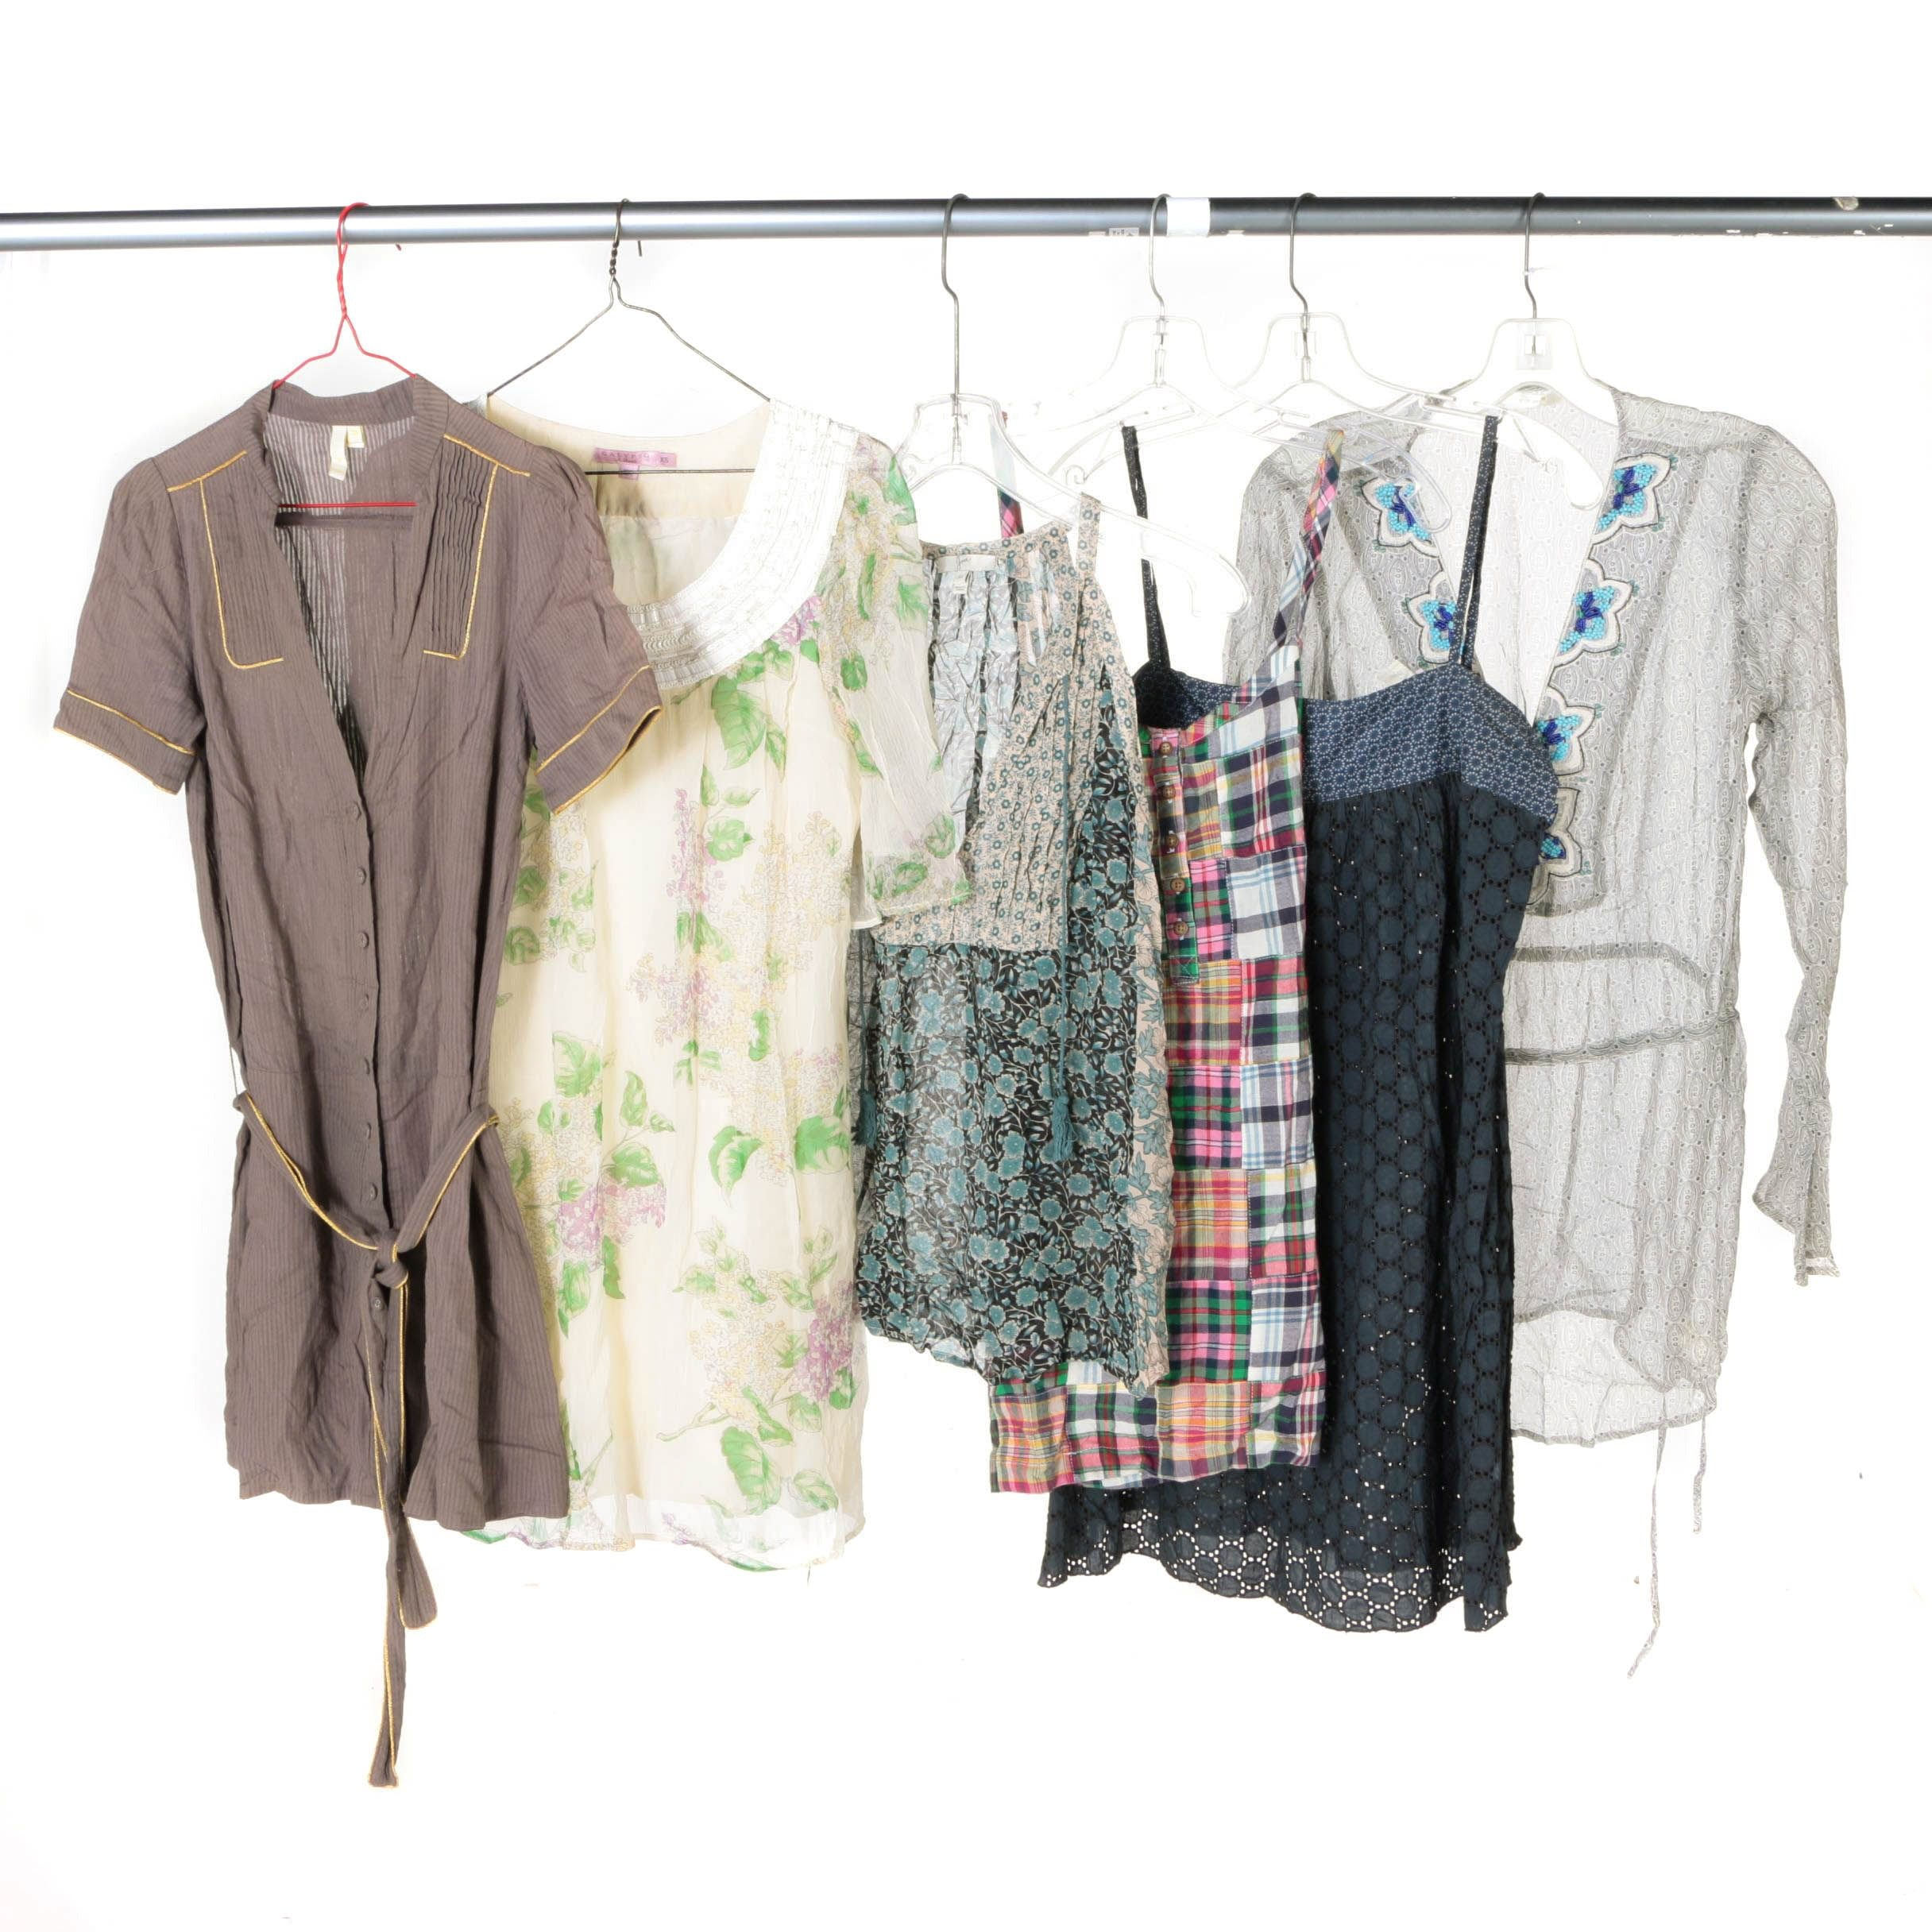 Women's Summer Tops and Dresses